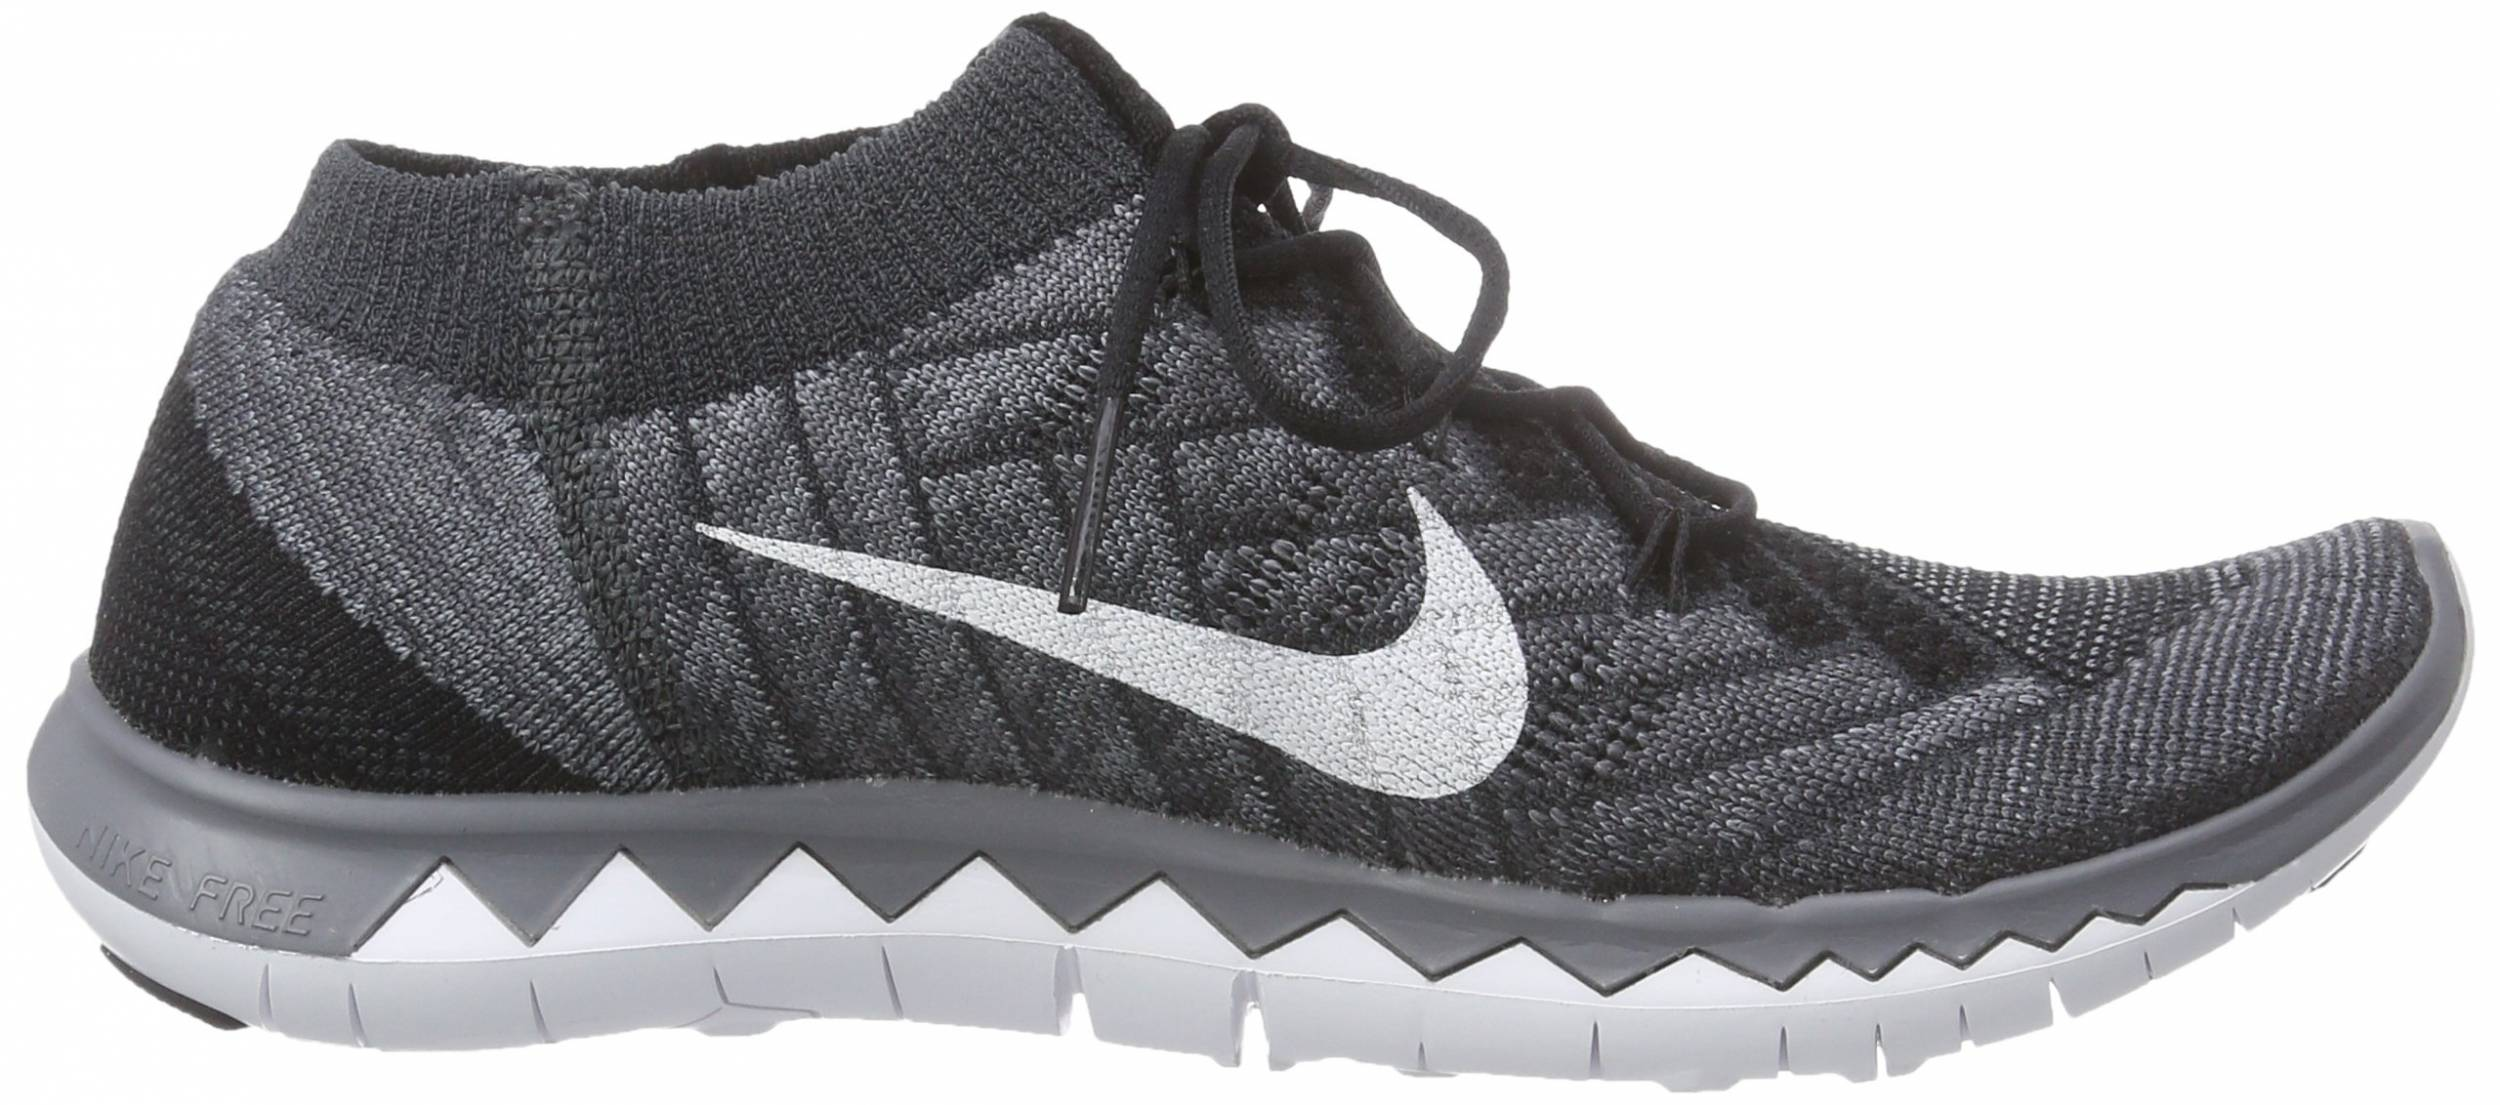 adiós lámpara Telemacos  Nike Free Flyknit 3.0 - Deals ($100), Facts, Reviews (2021) | RunRepeat